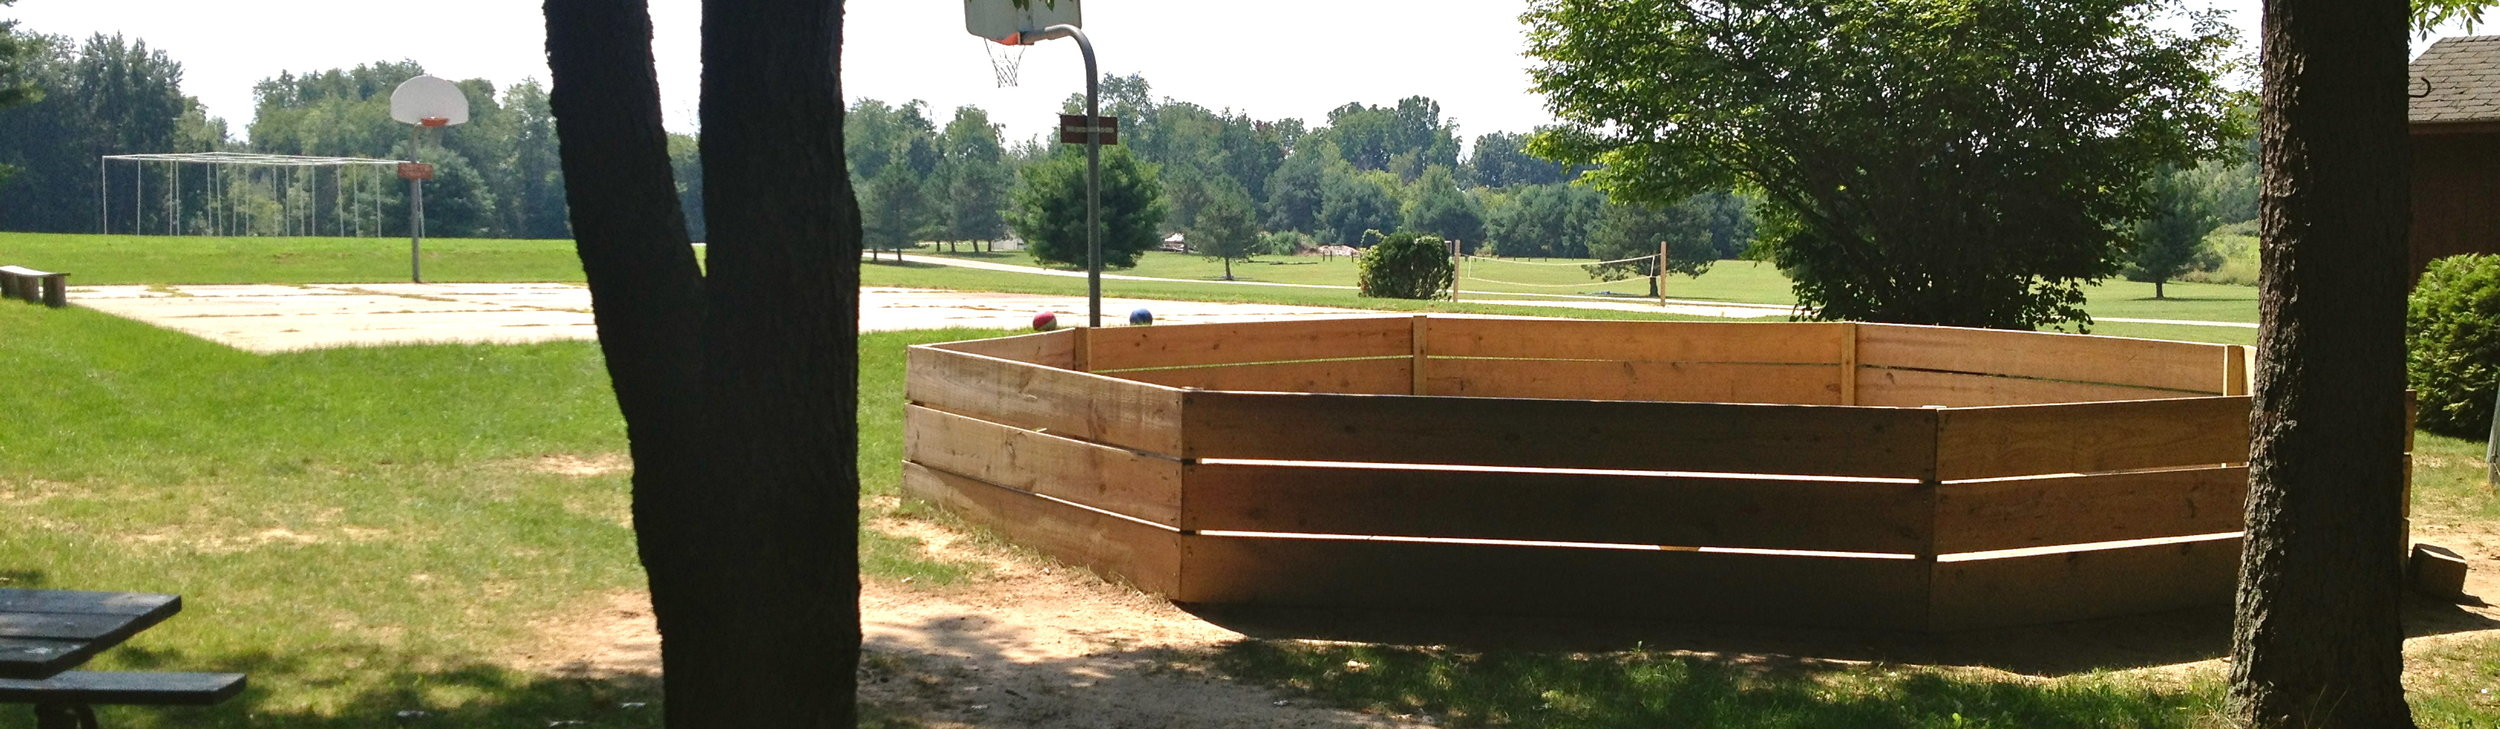 Gaga Ball, Basketball, and 9 Square In the Air are a few of many games and activities we have avialable for your group.